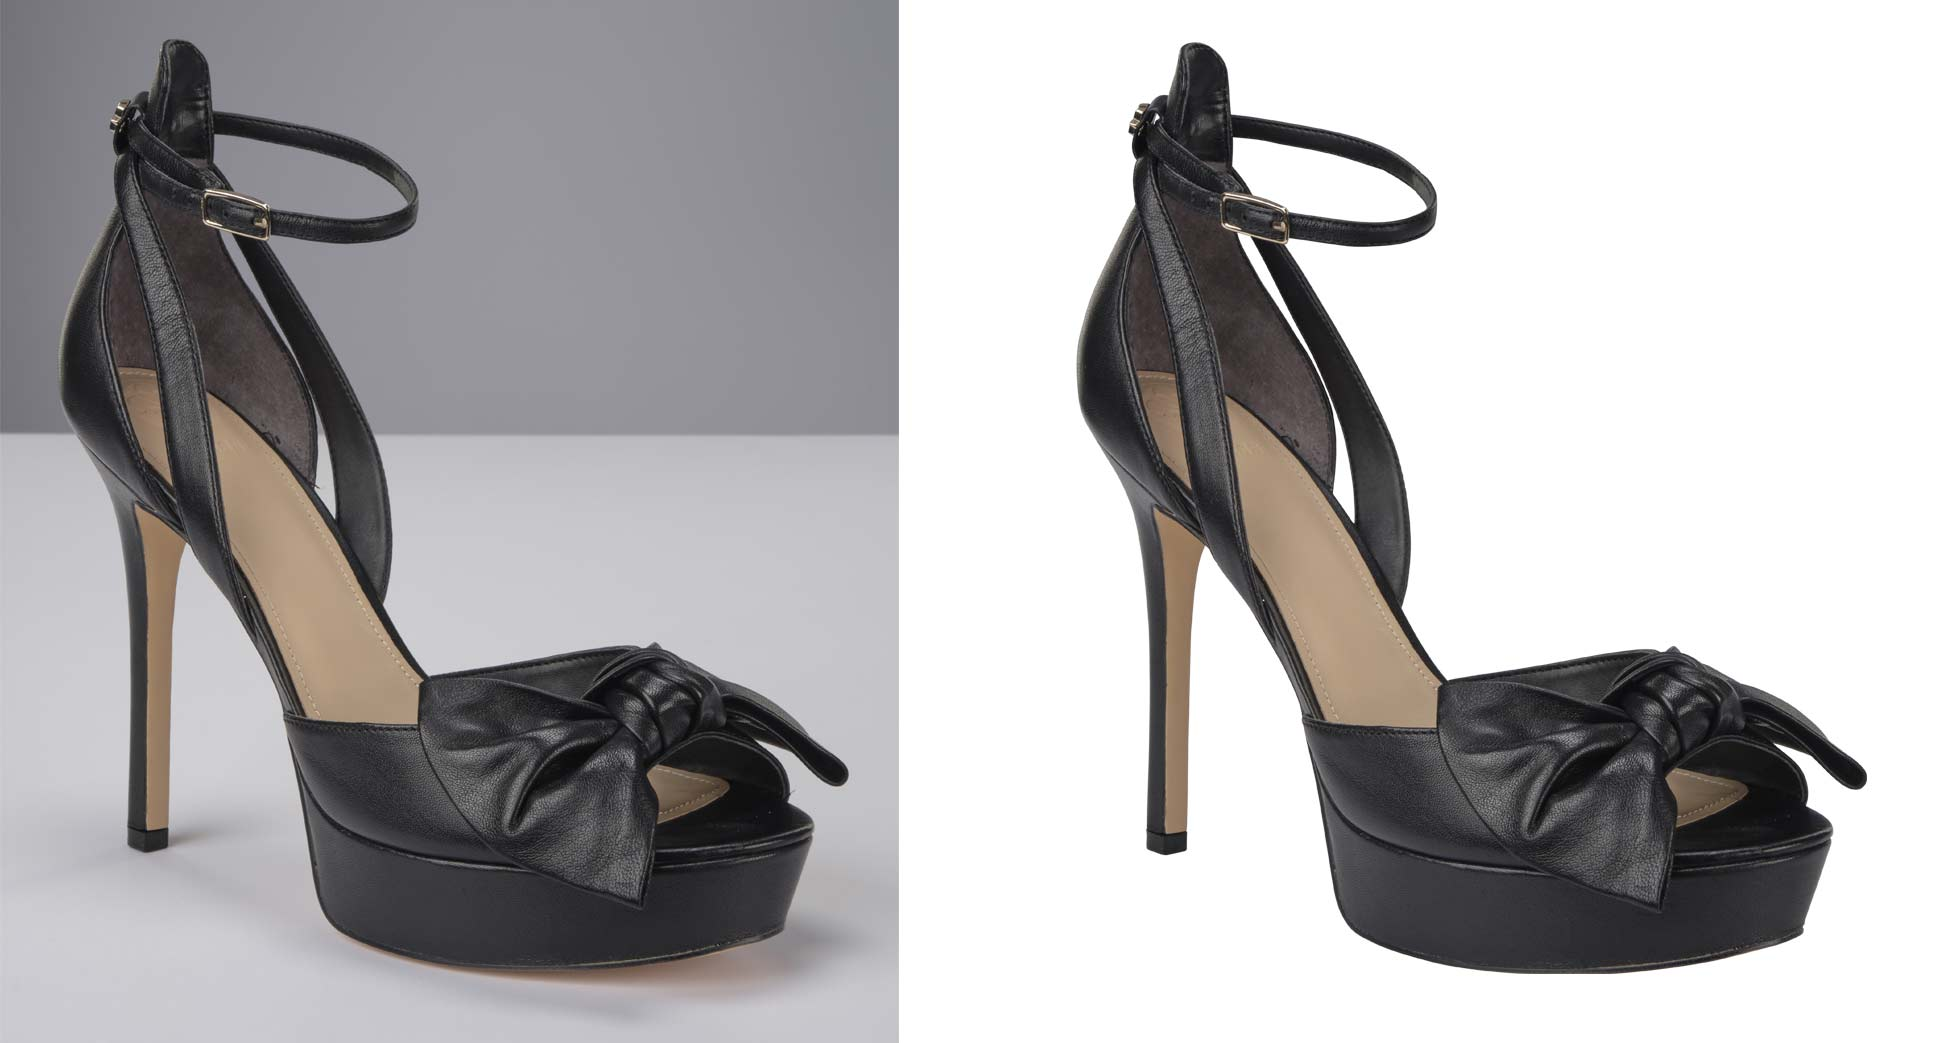 Clipping paths and background removal Services